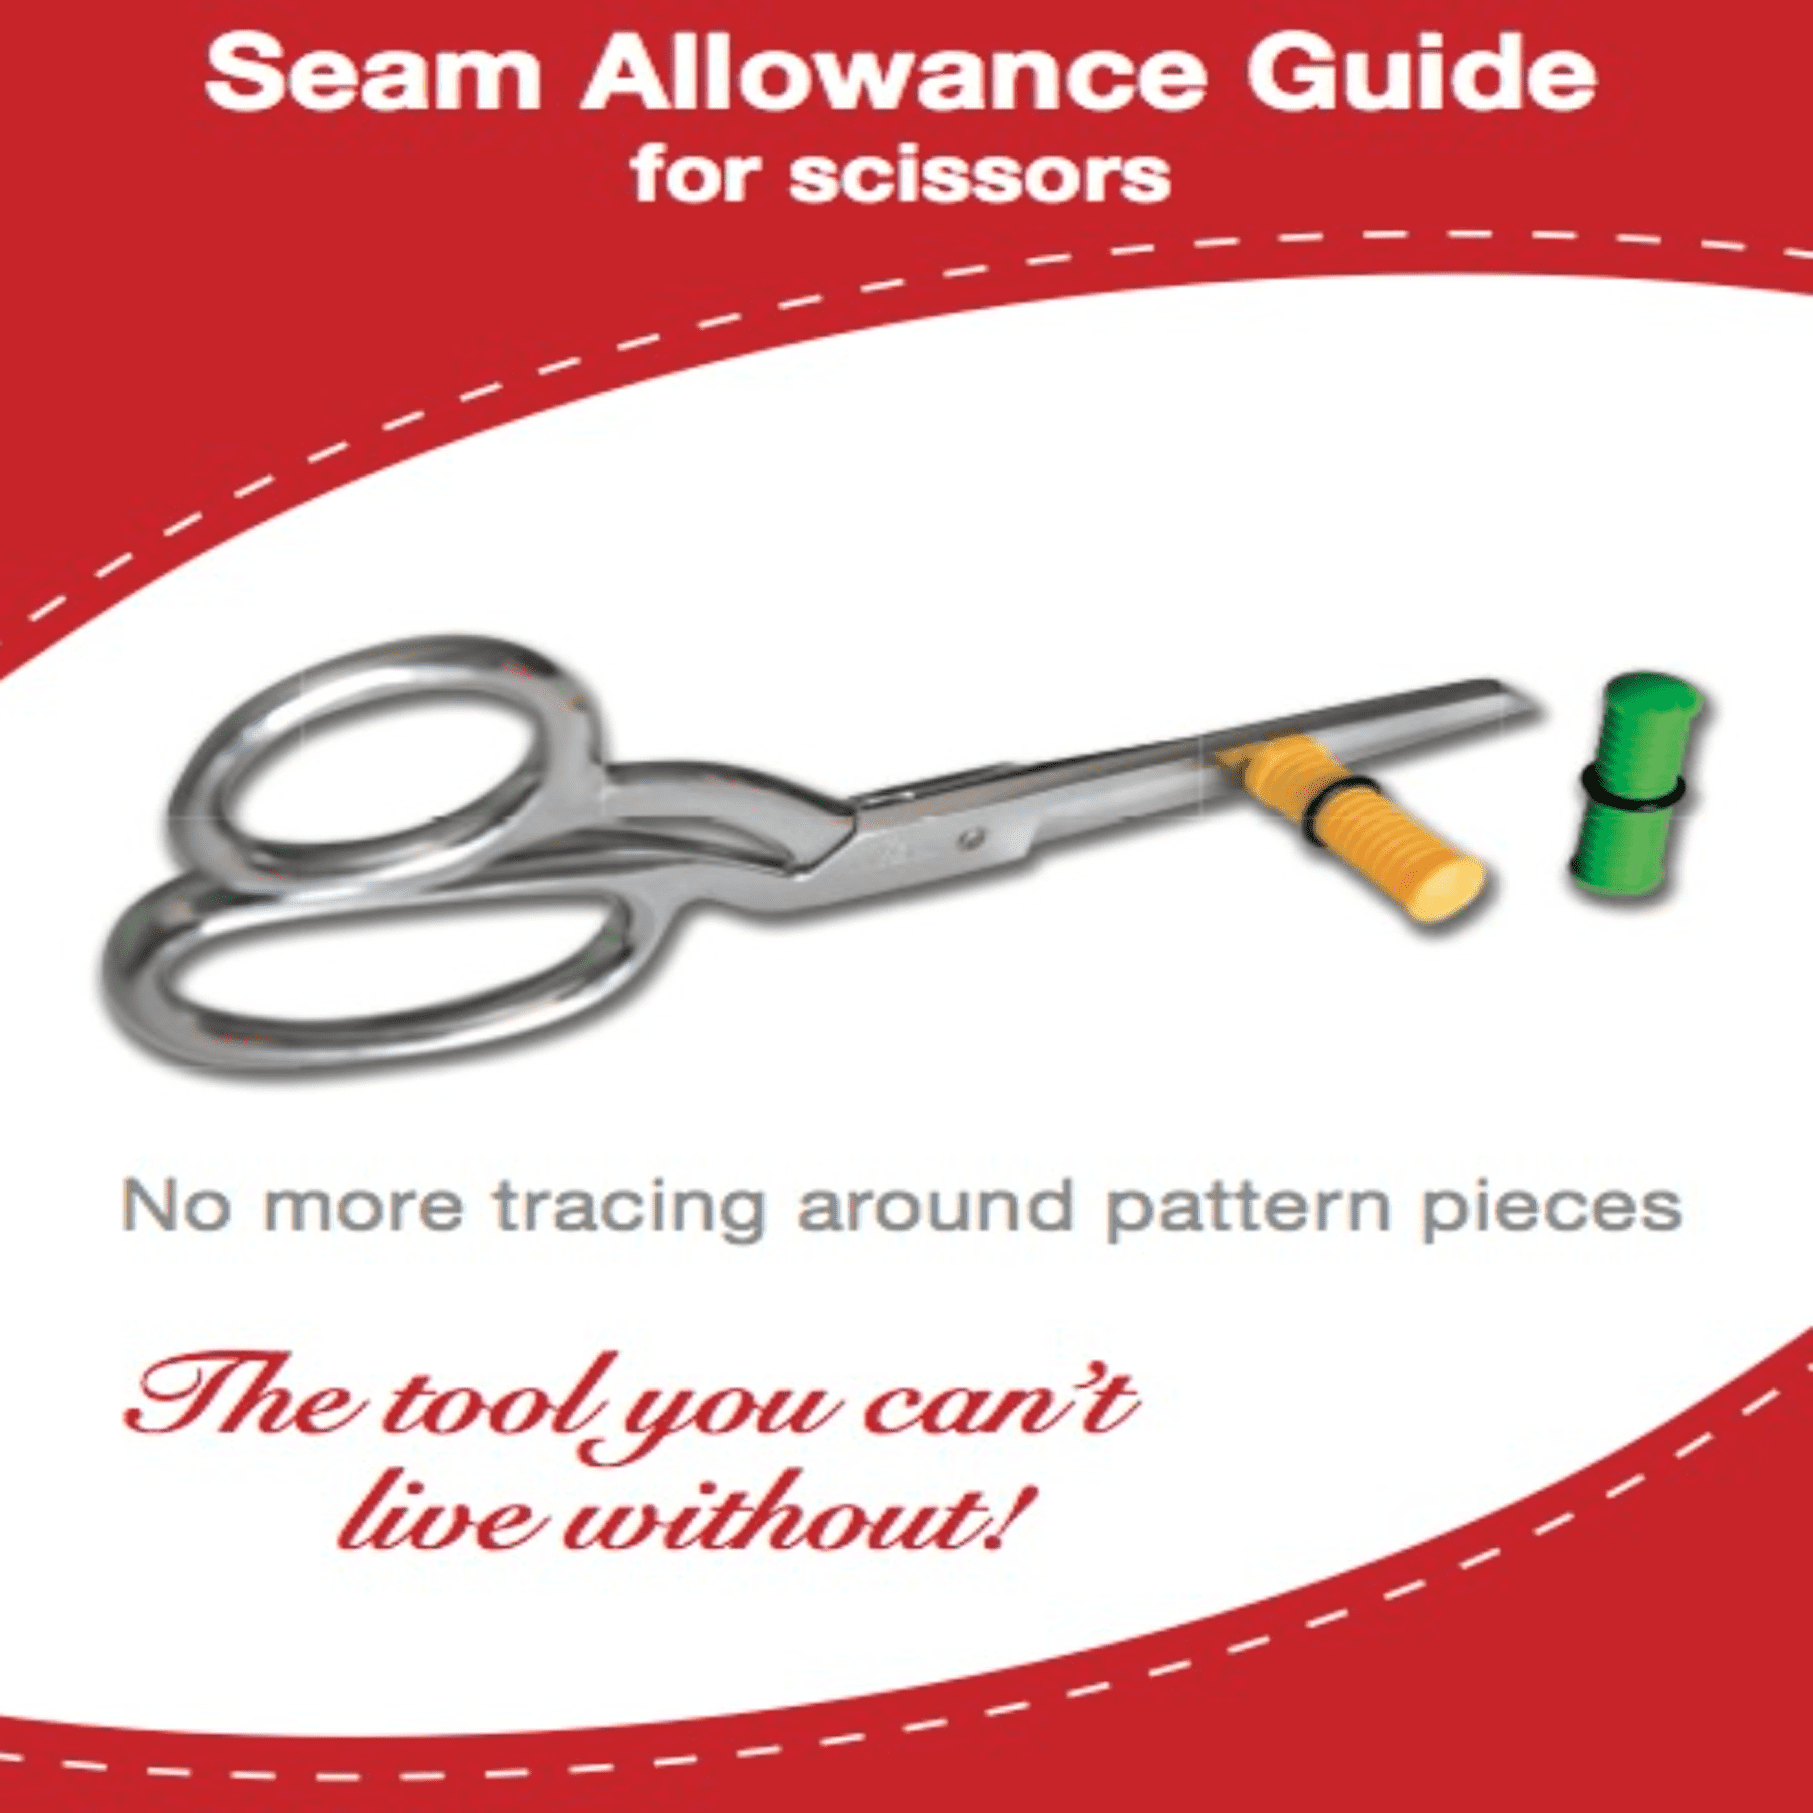 Seam-allowance Guide<br>